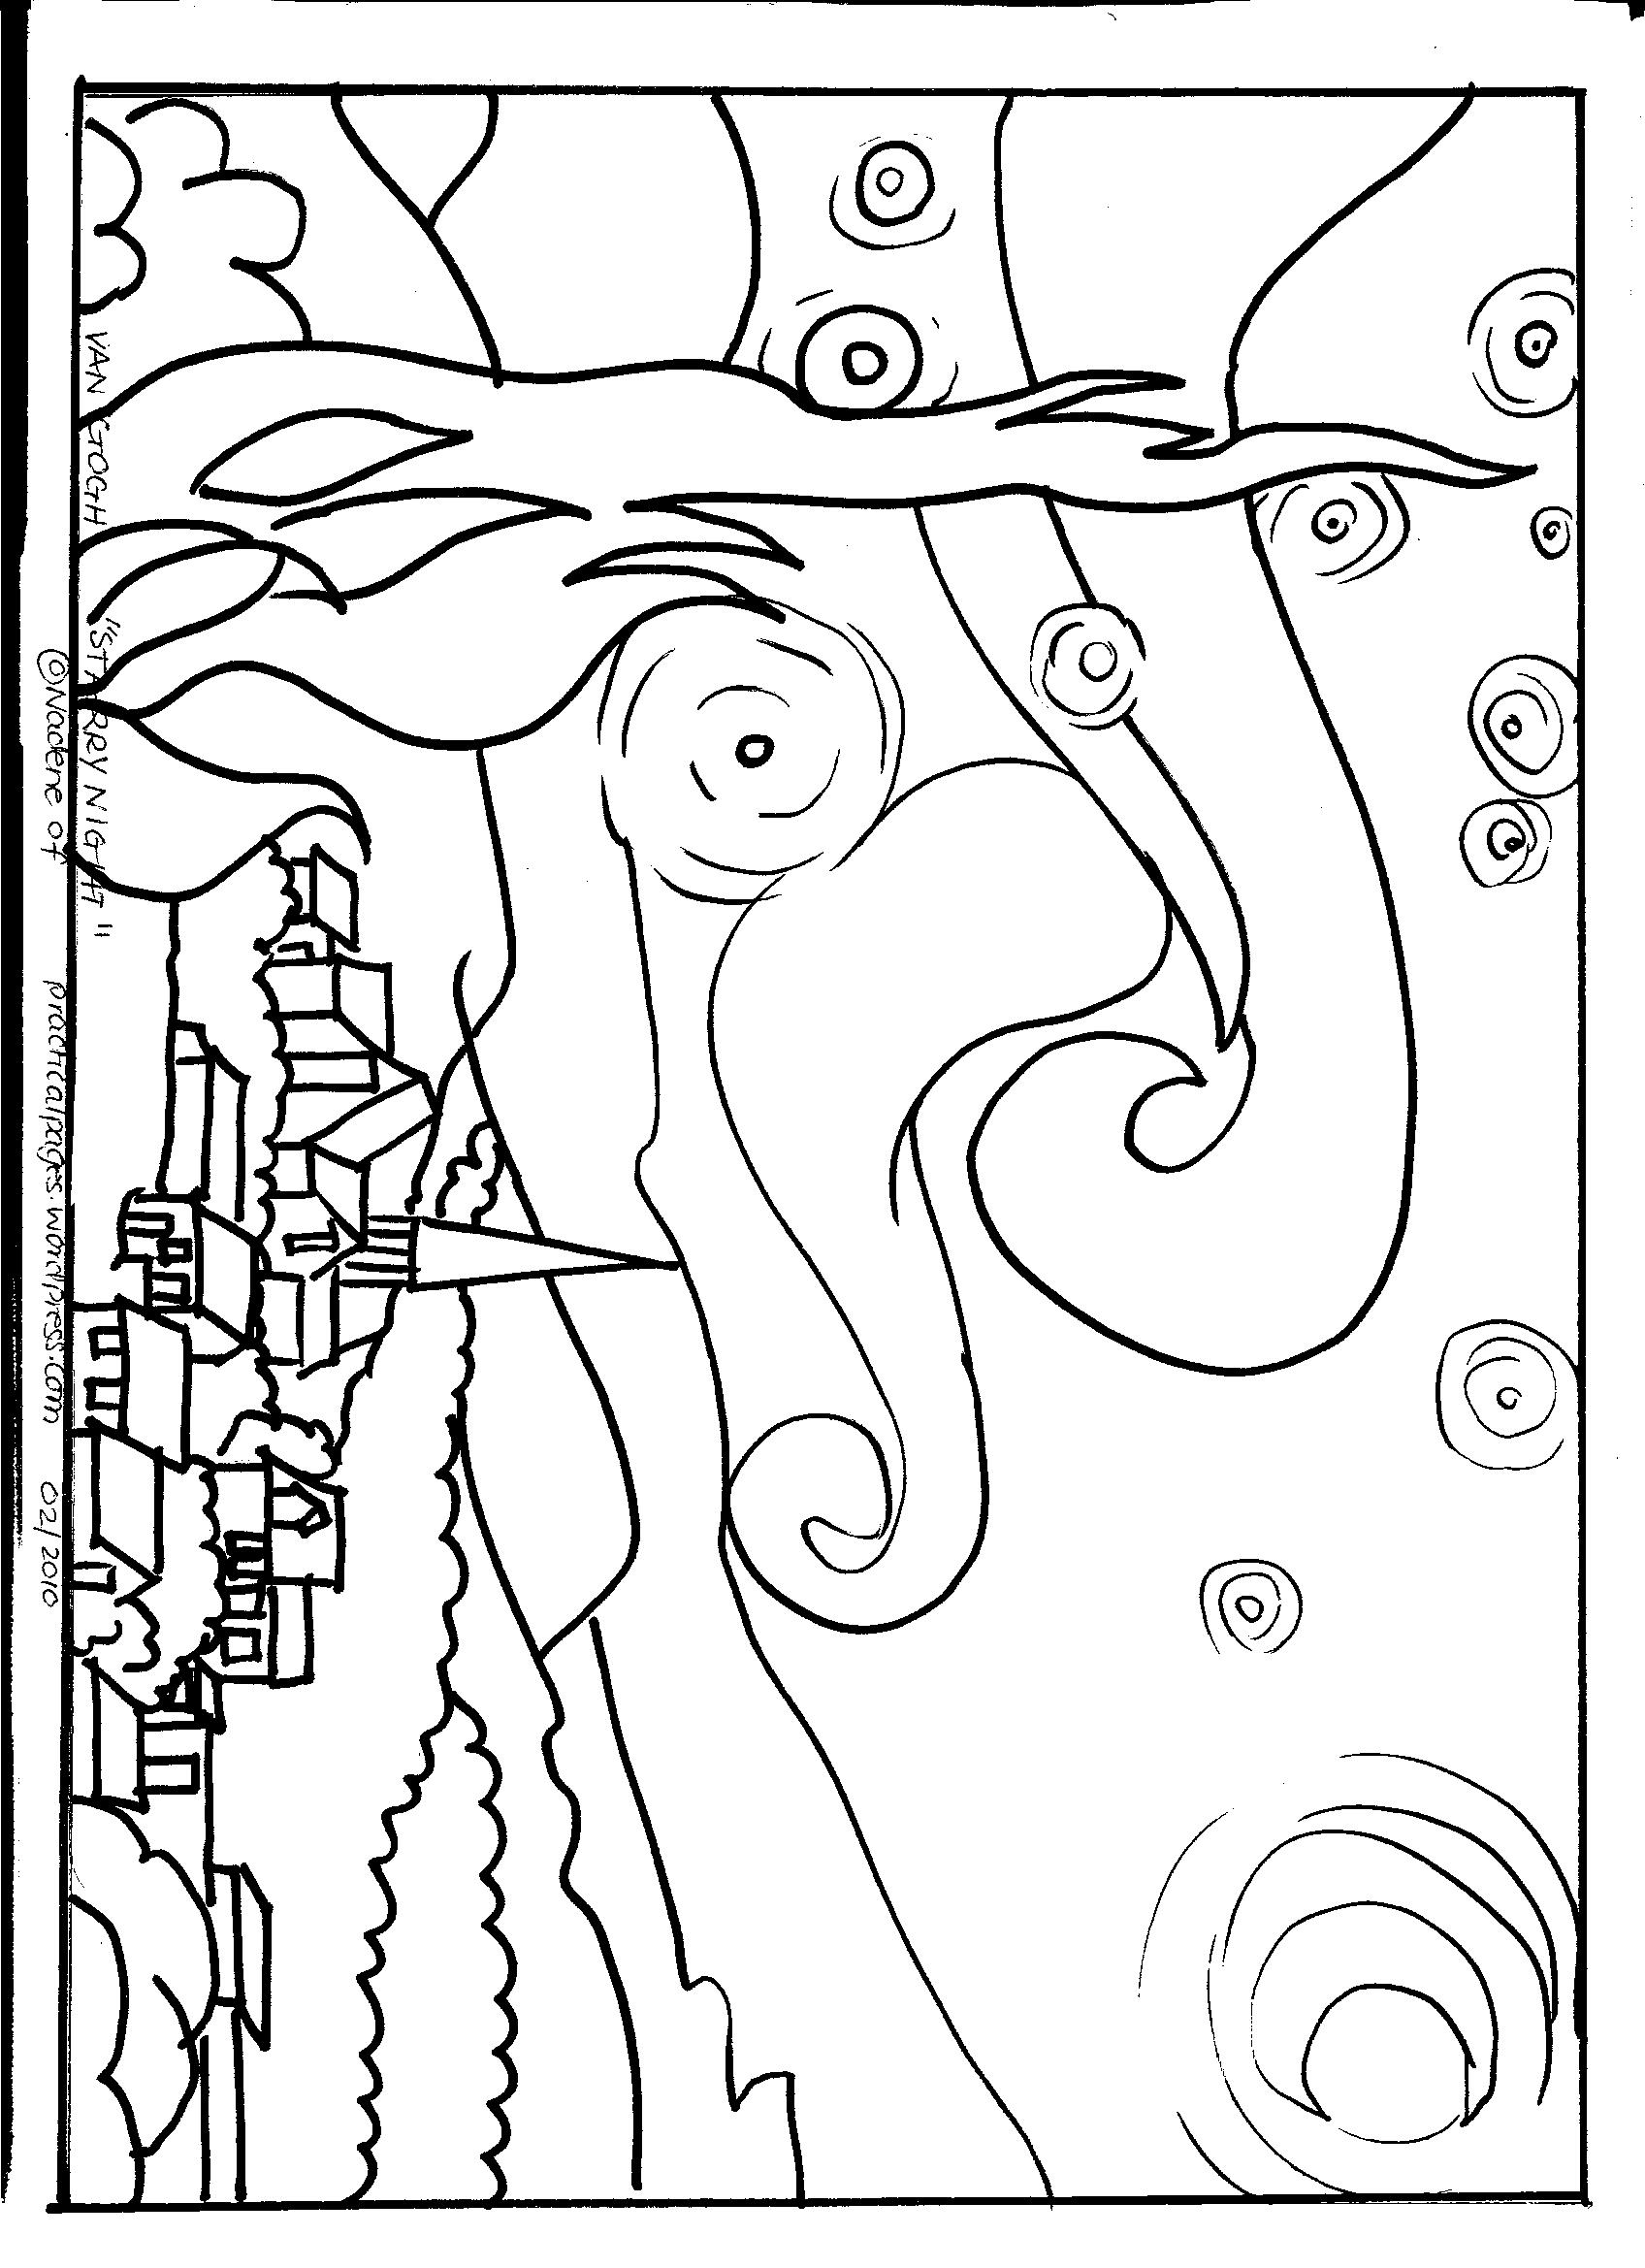 printable coloring pages famous artists - photo#7